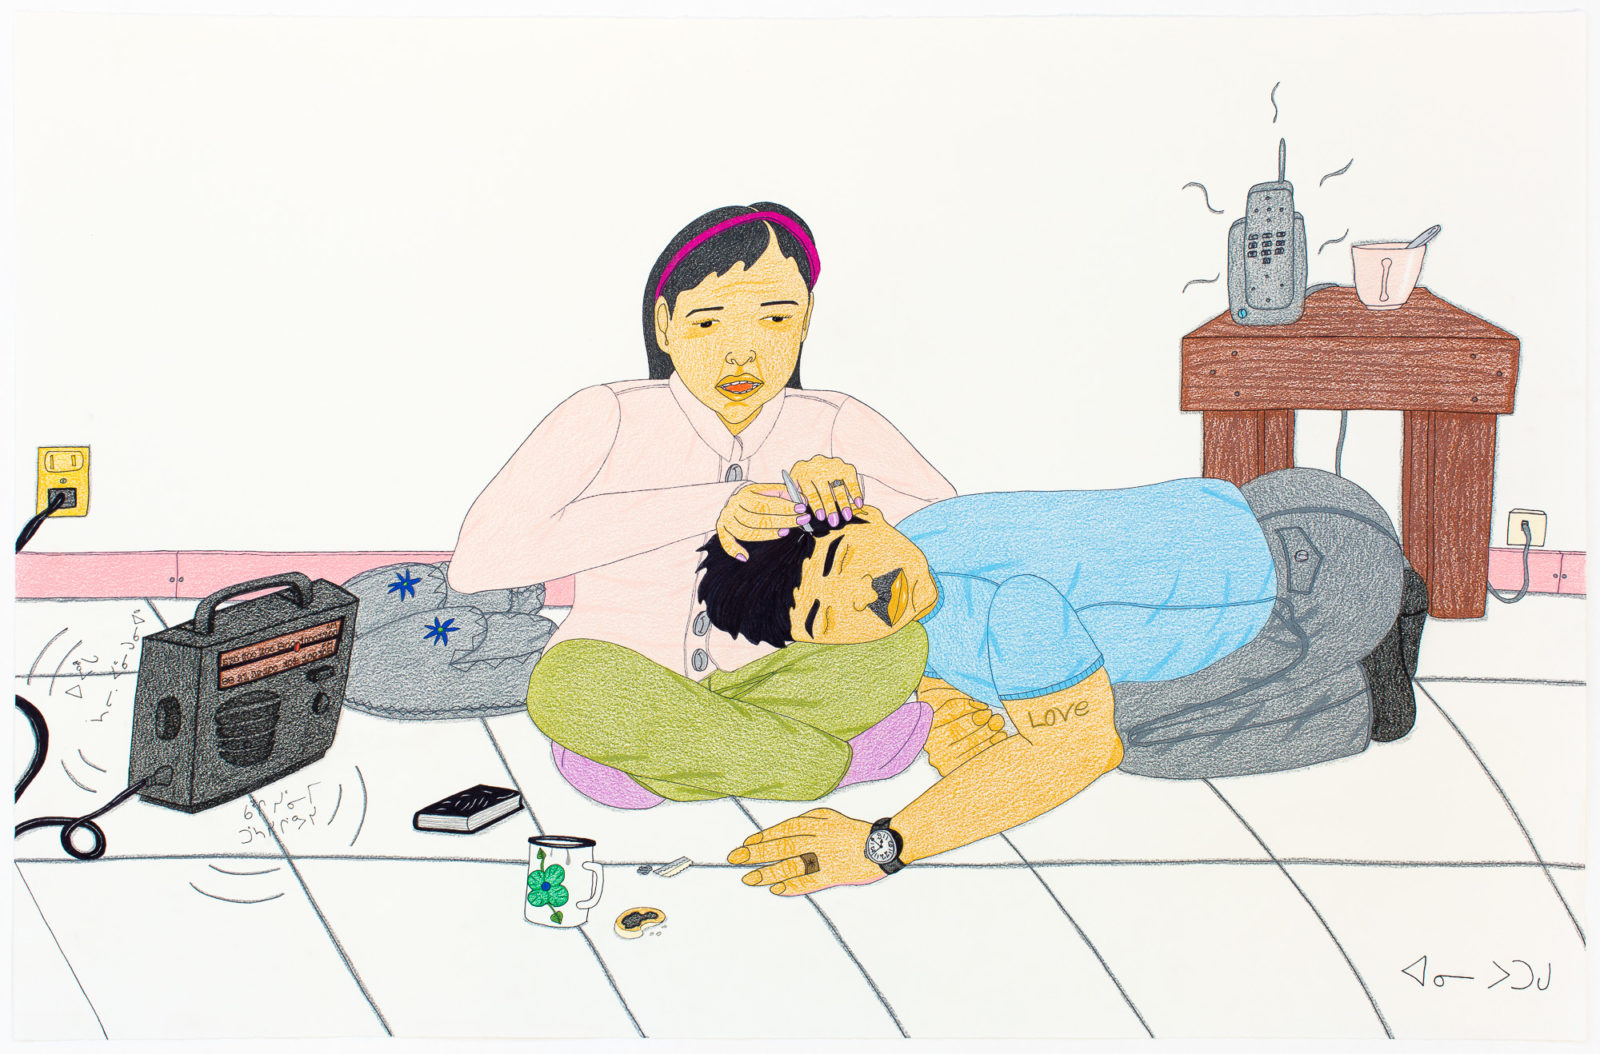 Annie Pootoogook - Composition (Plucking the Grey Hair)